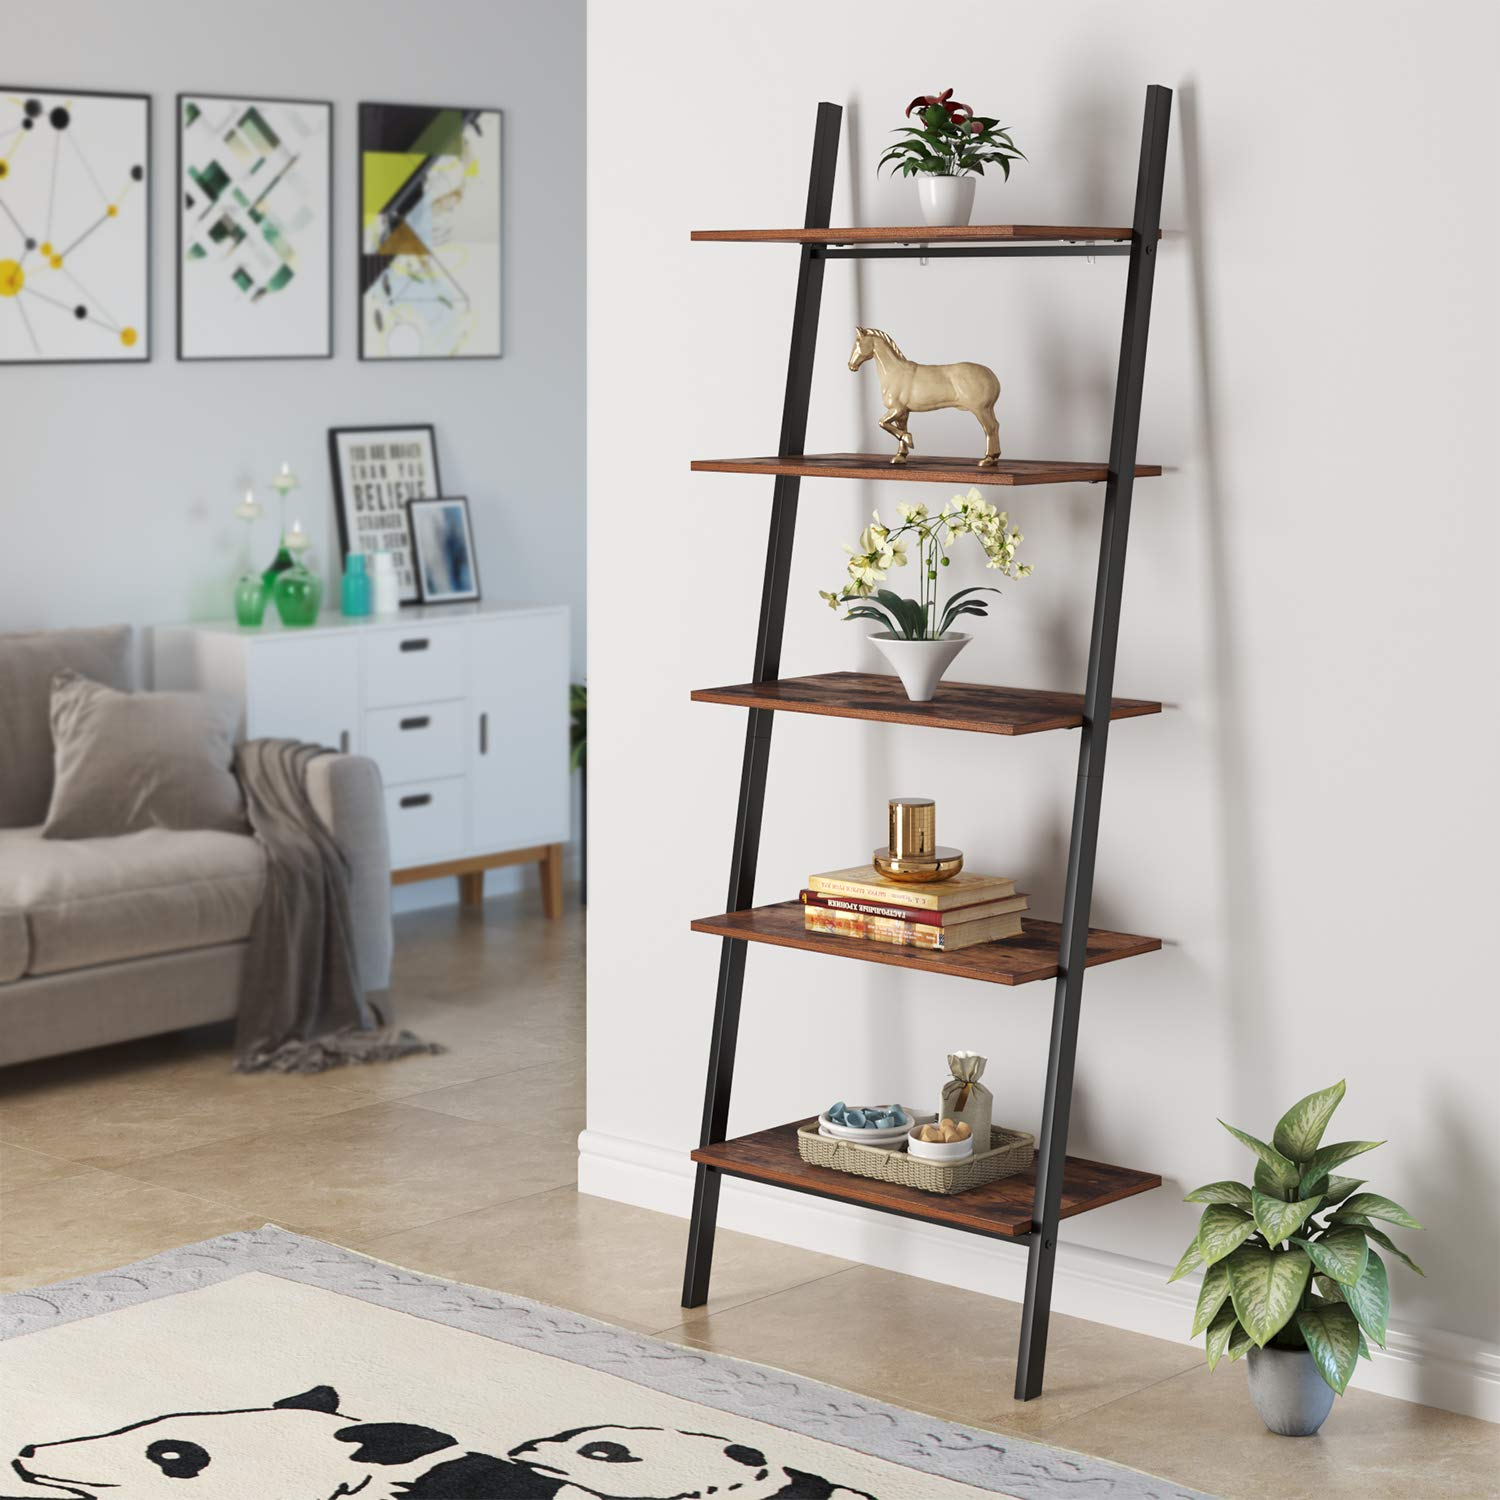 Homfa Industrial Ladder Shelf, 5-Tier Plant Flower Stand Leaning Wall Bookcase, Multipurpose Storage Organizer Display Rack, Wood Look Accent Metal Frame Home Office by Homfa